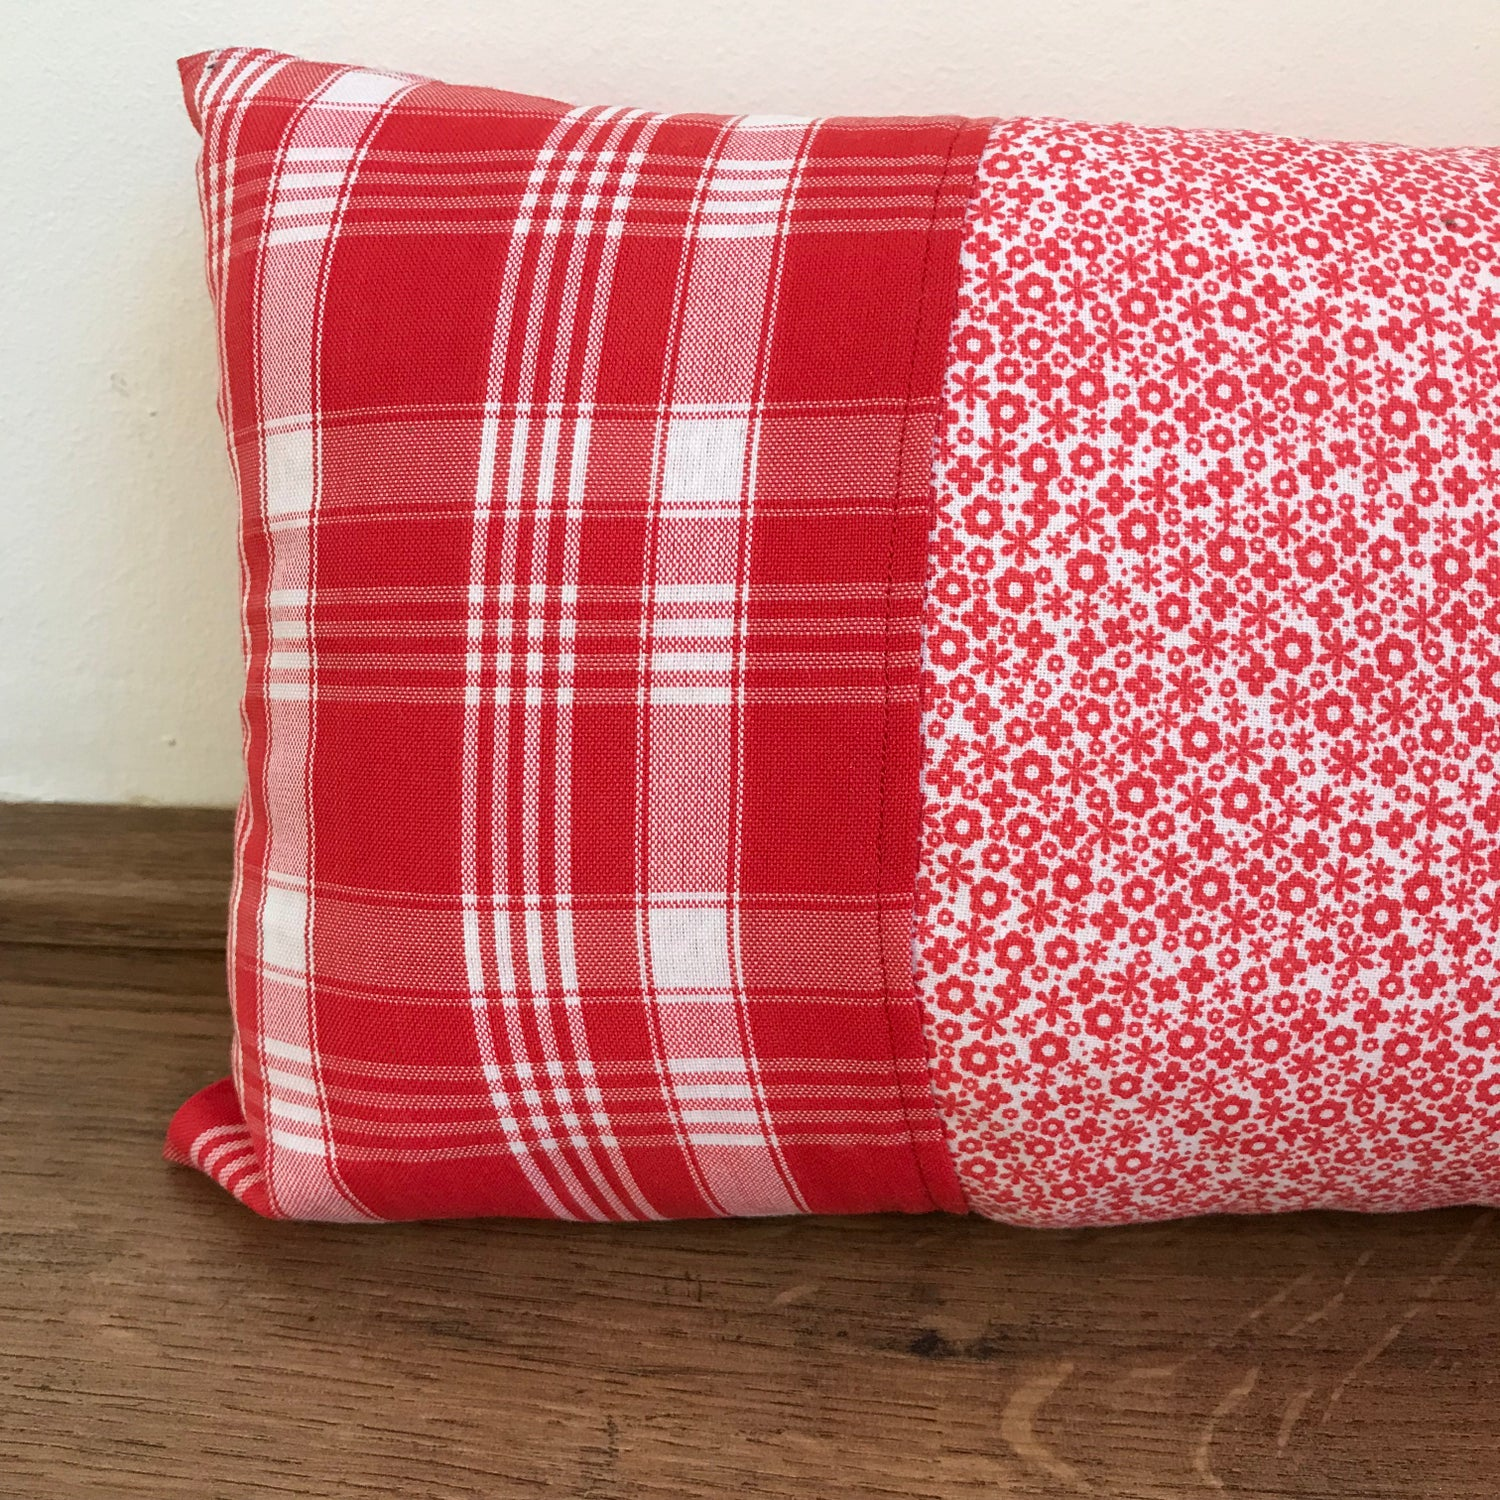 Image of Kitchen pillow two patterns red